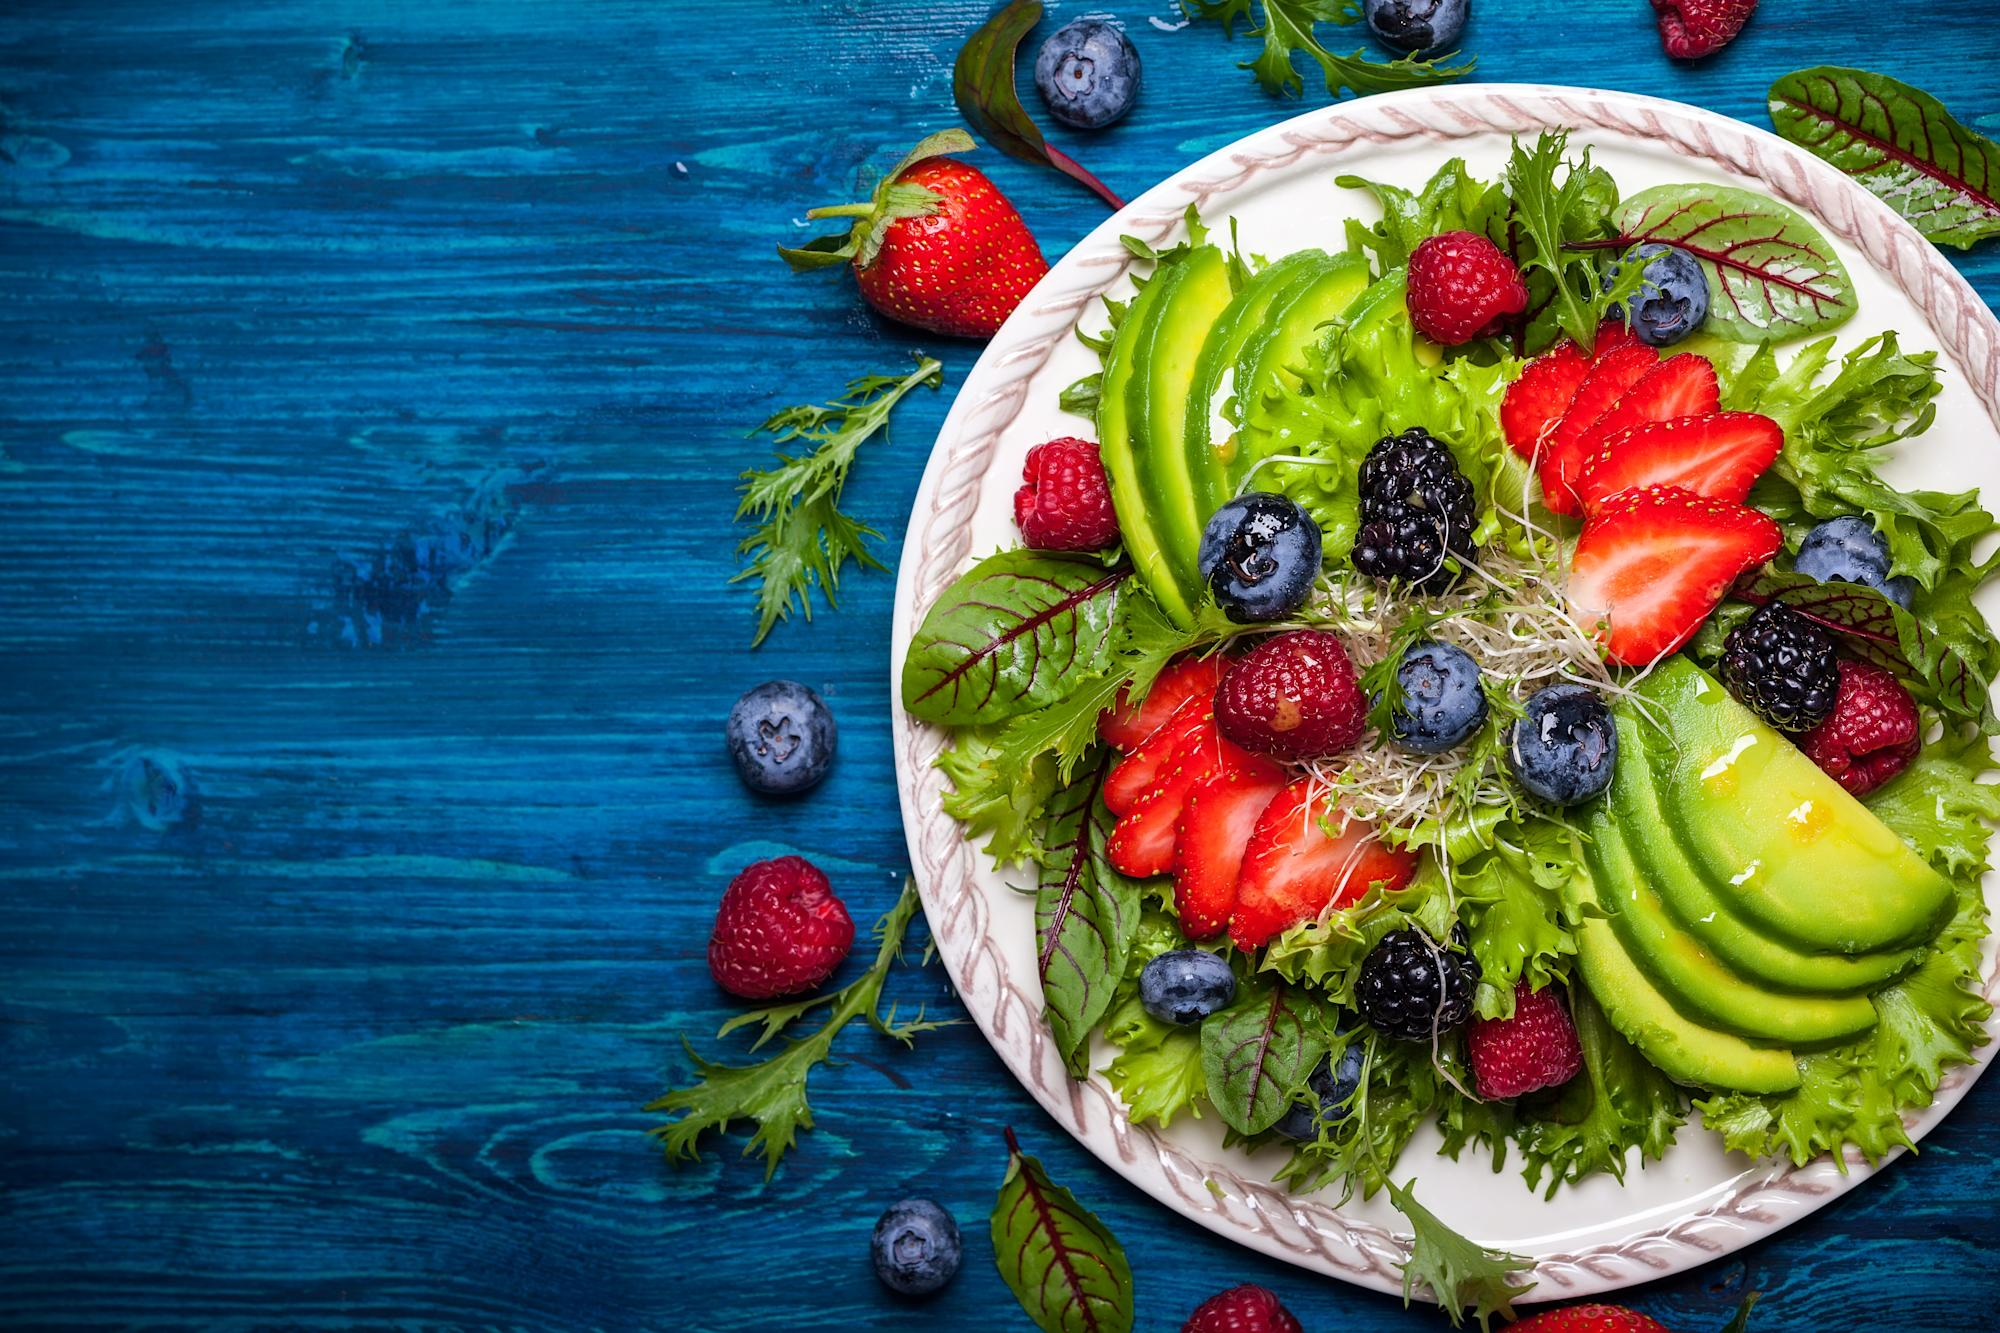 Eating a colourful diet may help promote long-term brain health